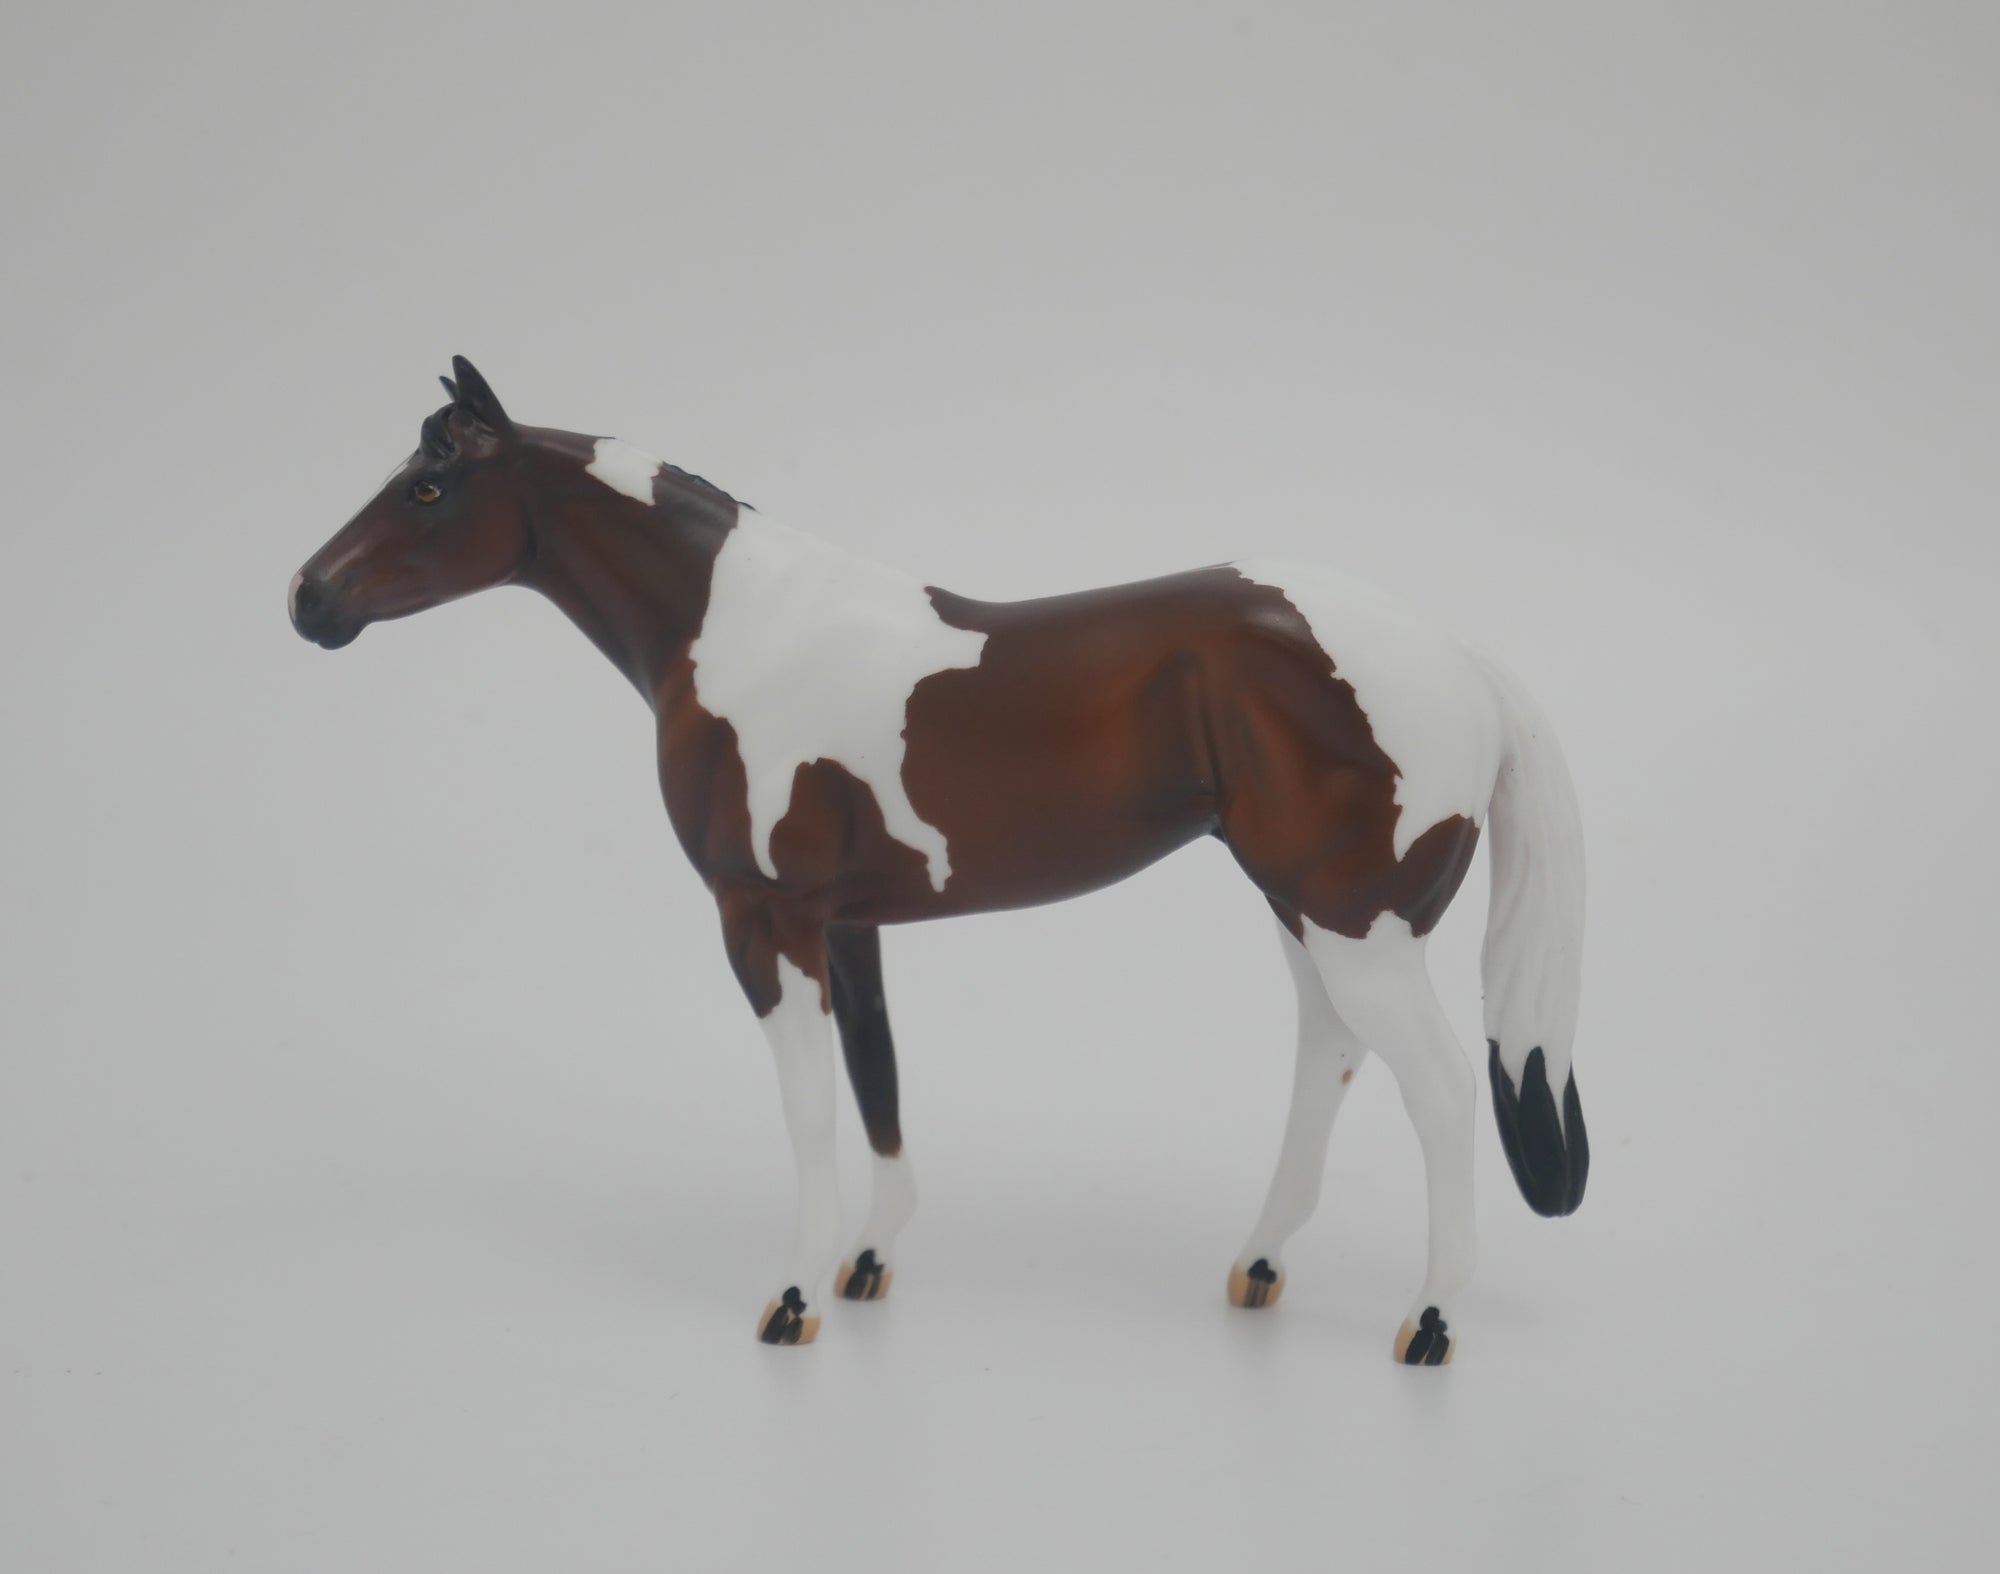 MINI ME BUCKEYE BAY PINTO STONE STOCK HORSE CHIP MODEL HORSE EA/MW 2020